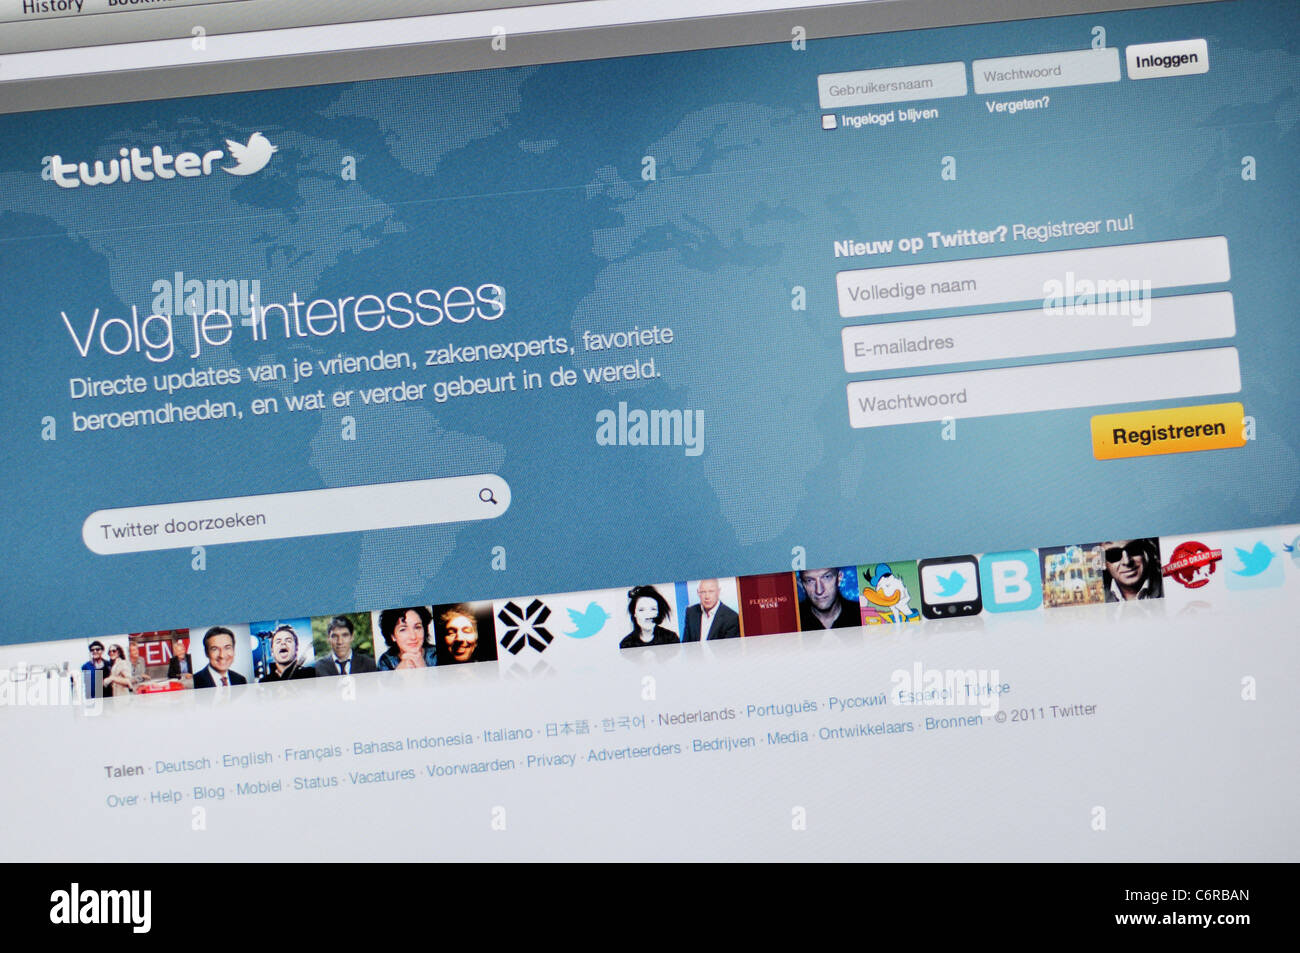 French Twitter Immagini   French Twitter Fotos Stock - Alamy 76052af471a0